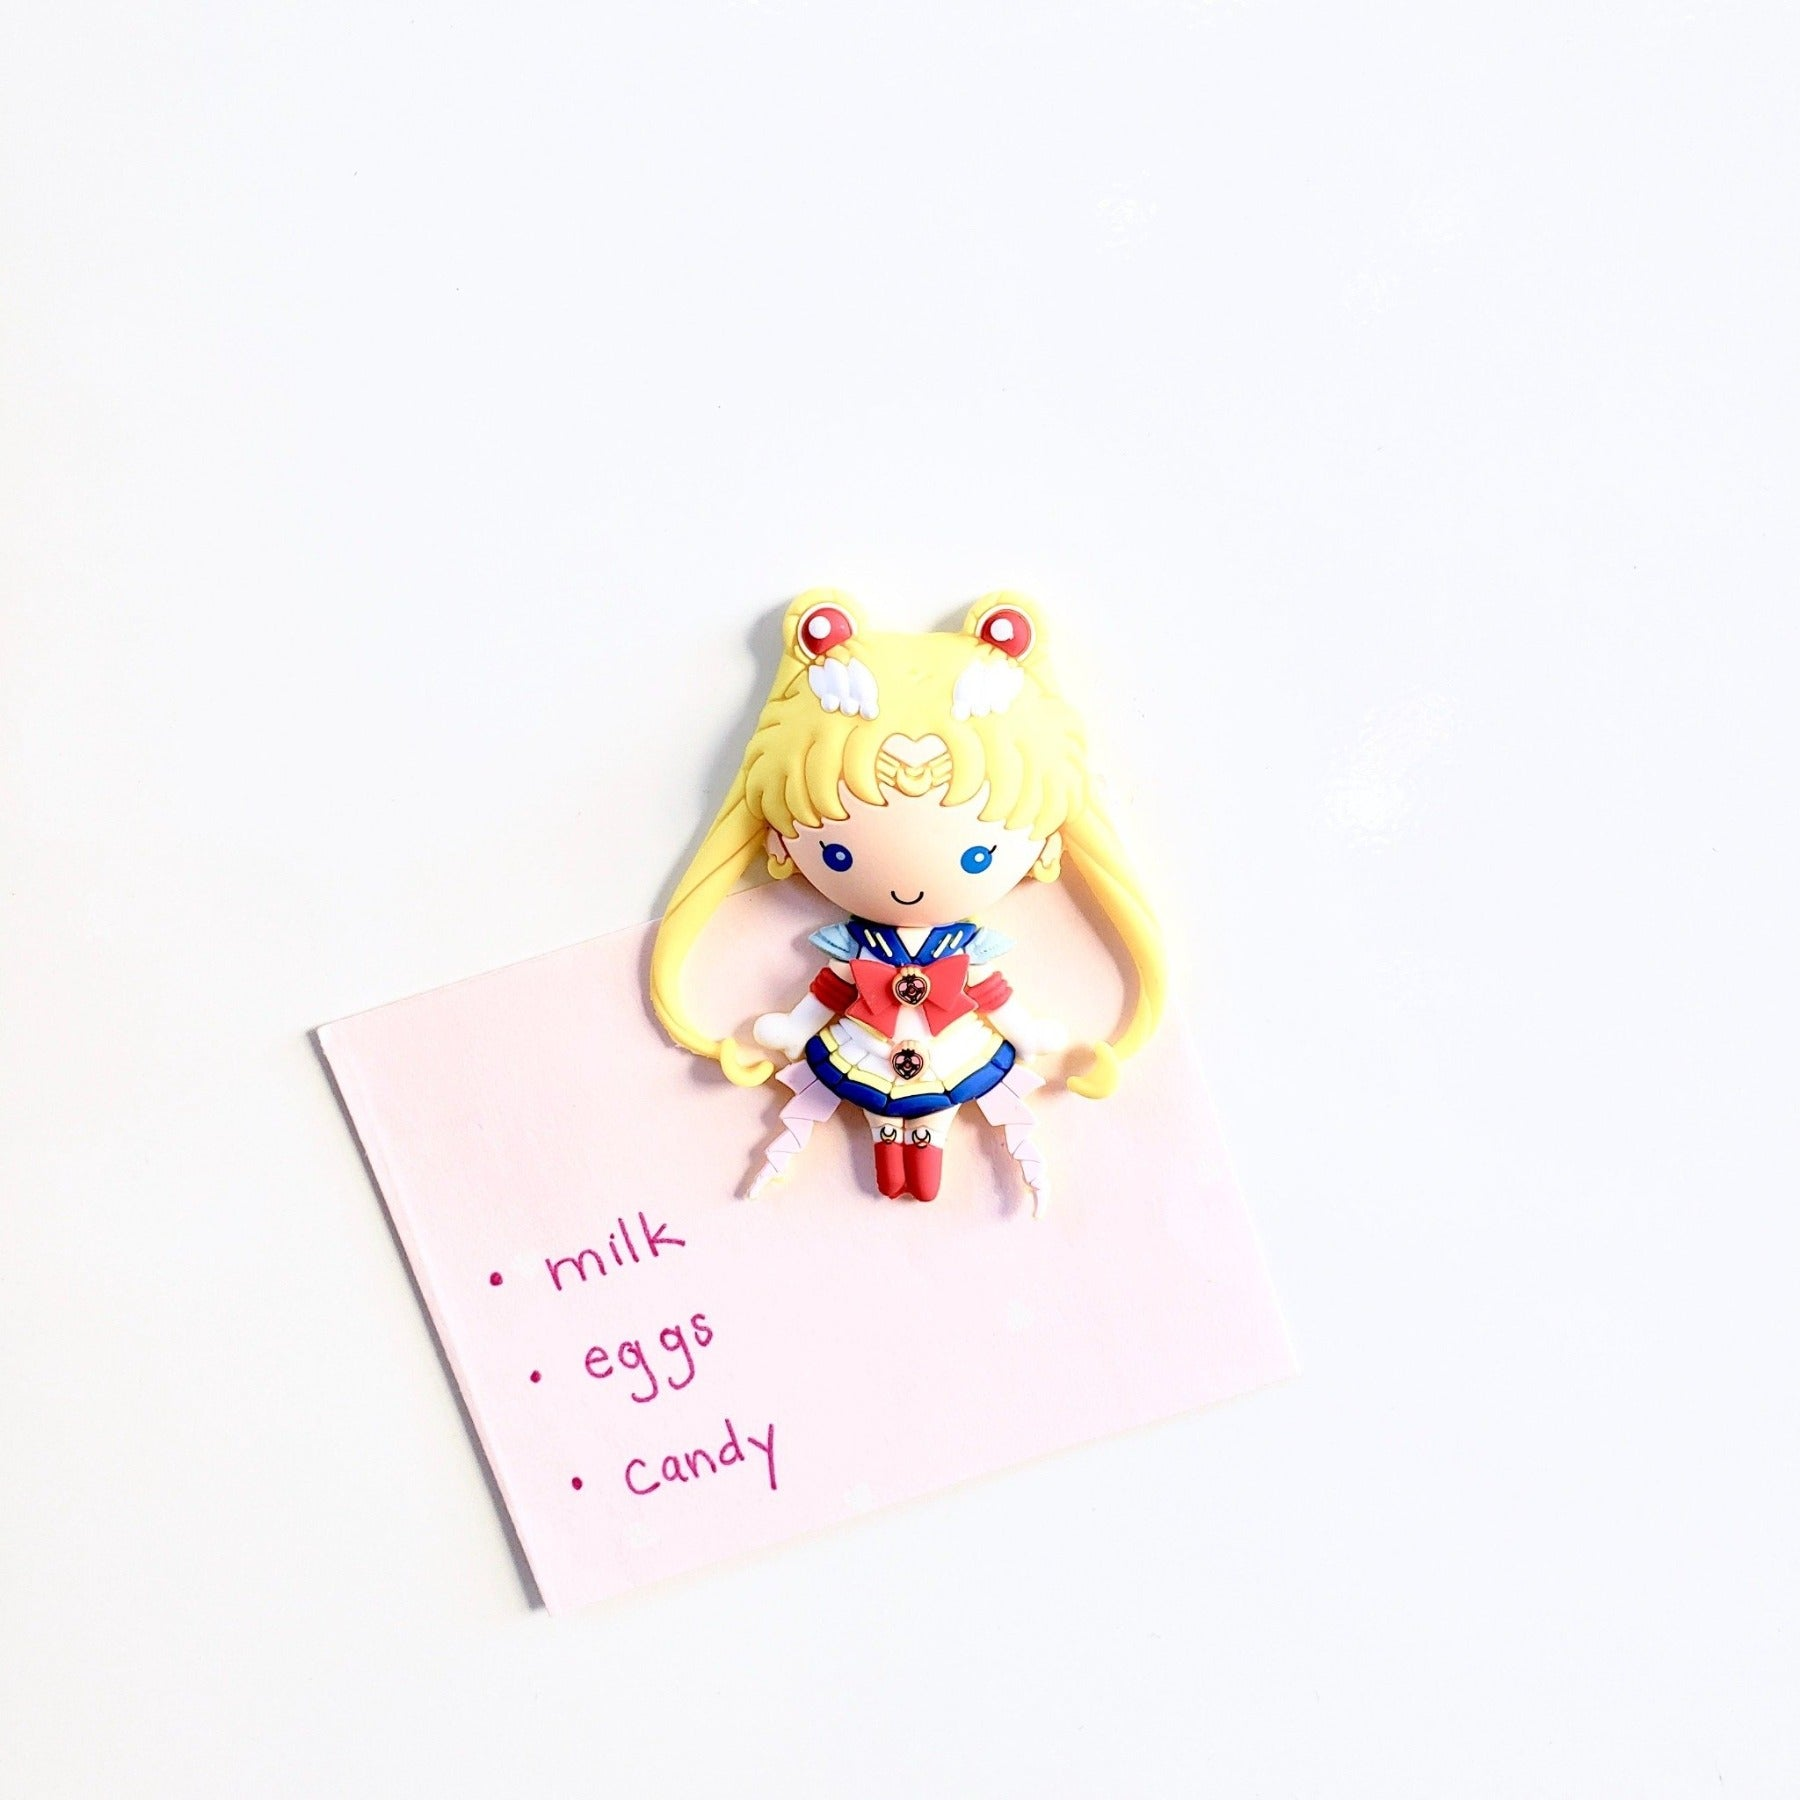 Shopping list hung on magnetic surface with Sailor Moon 3D vinyl figure magnet